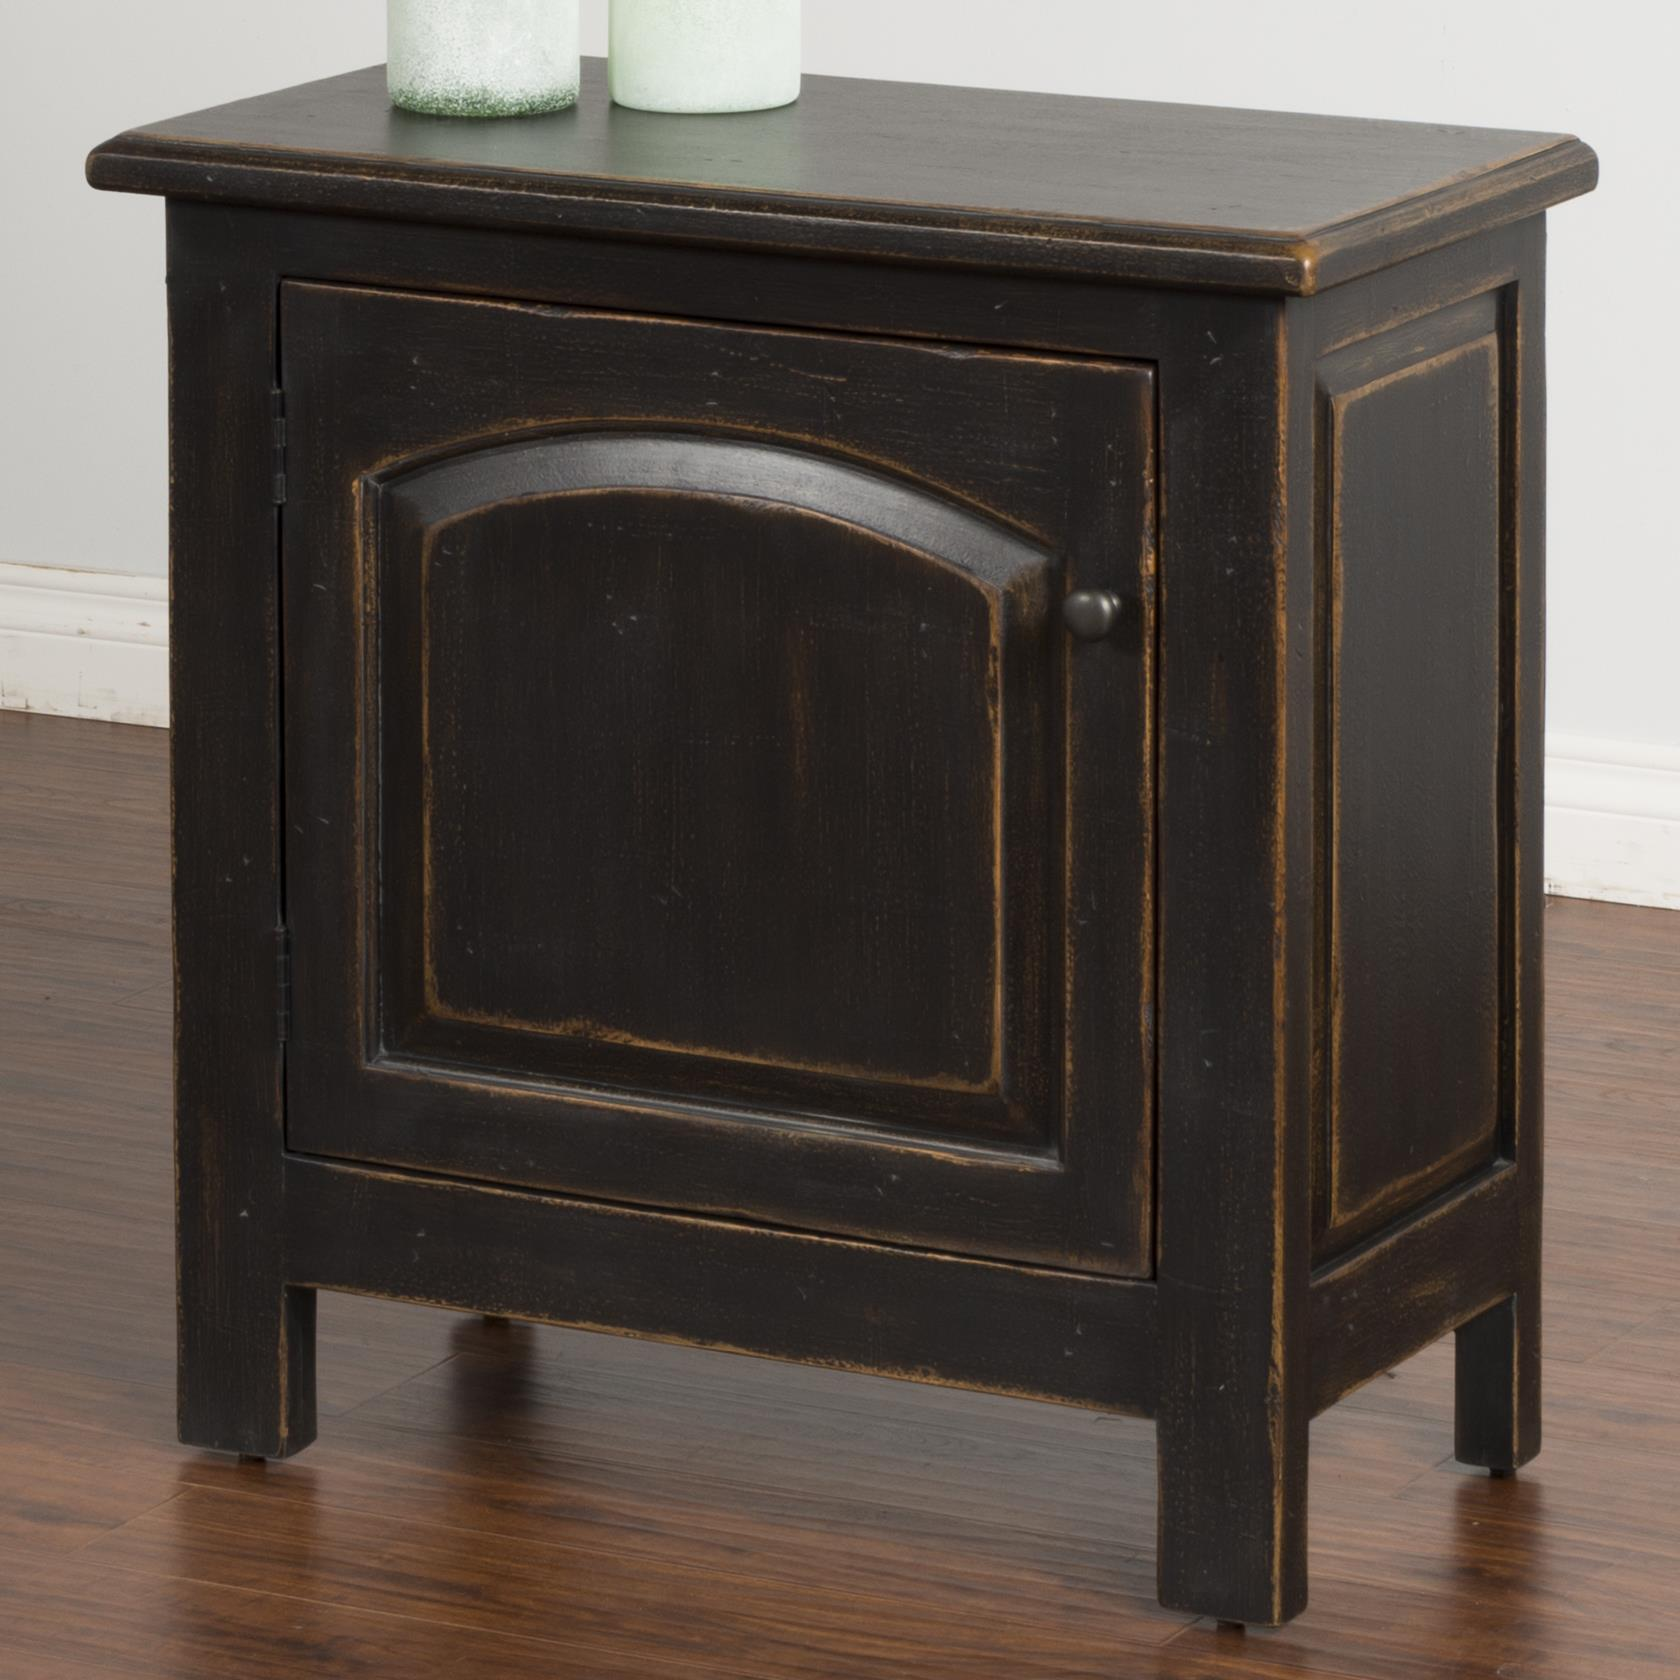 Sunny Designs Black End Table - Item Number: 2271B-E